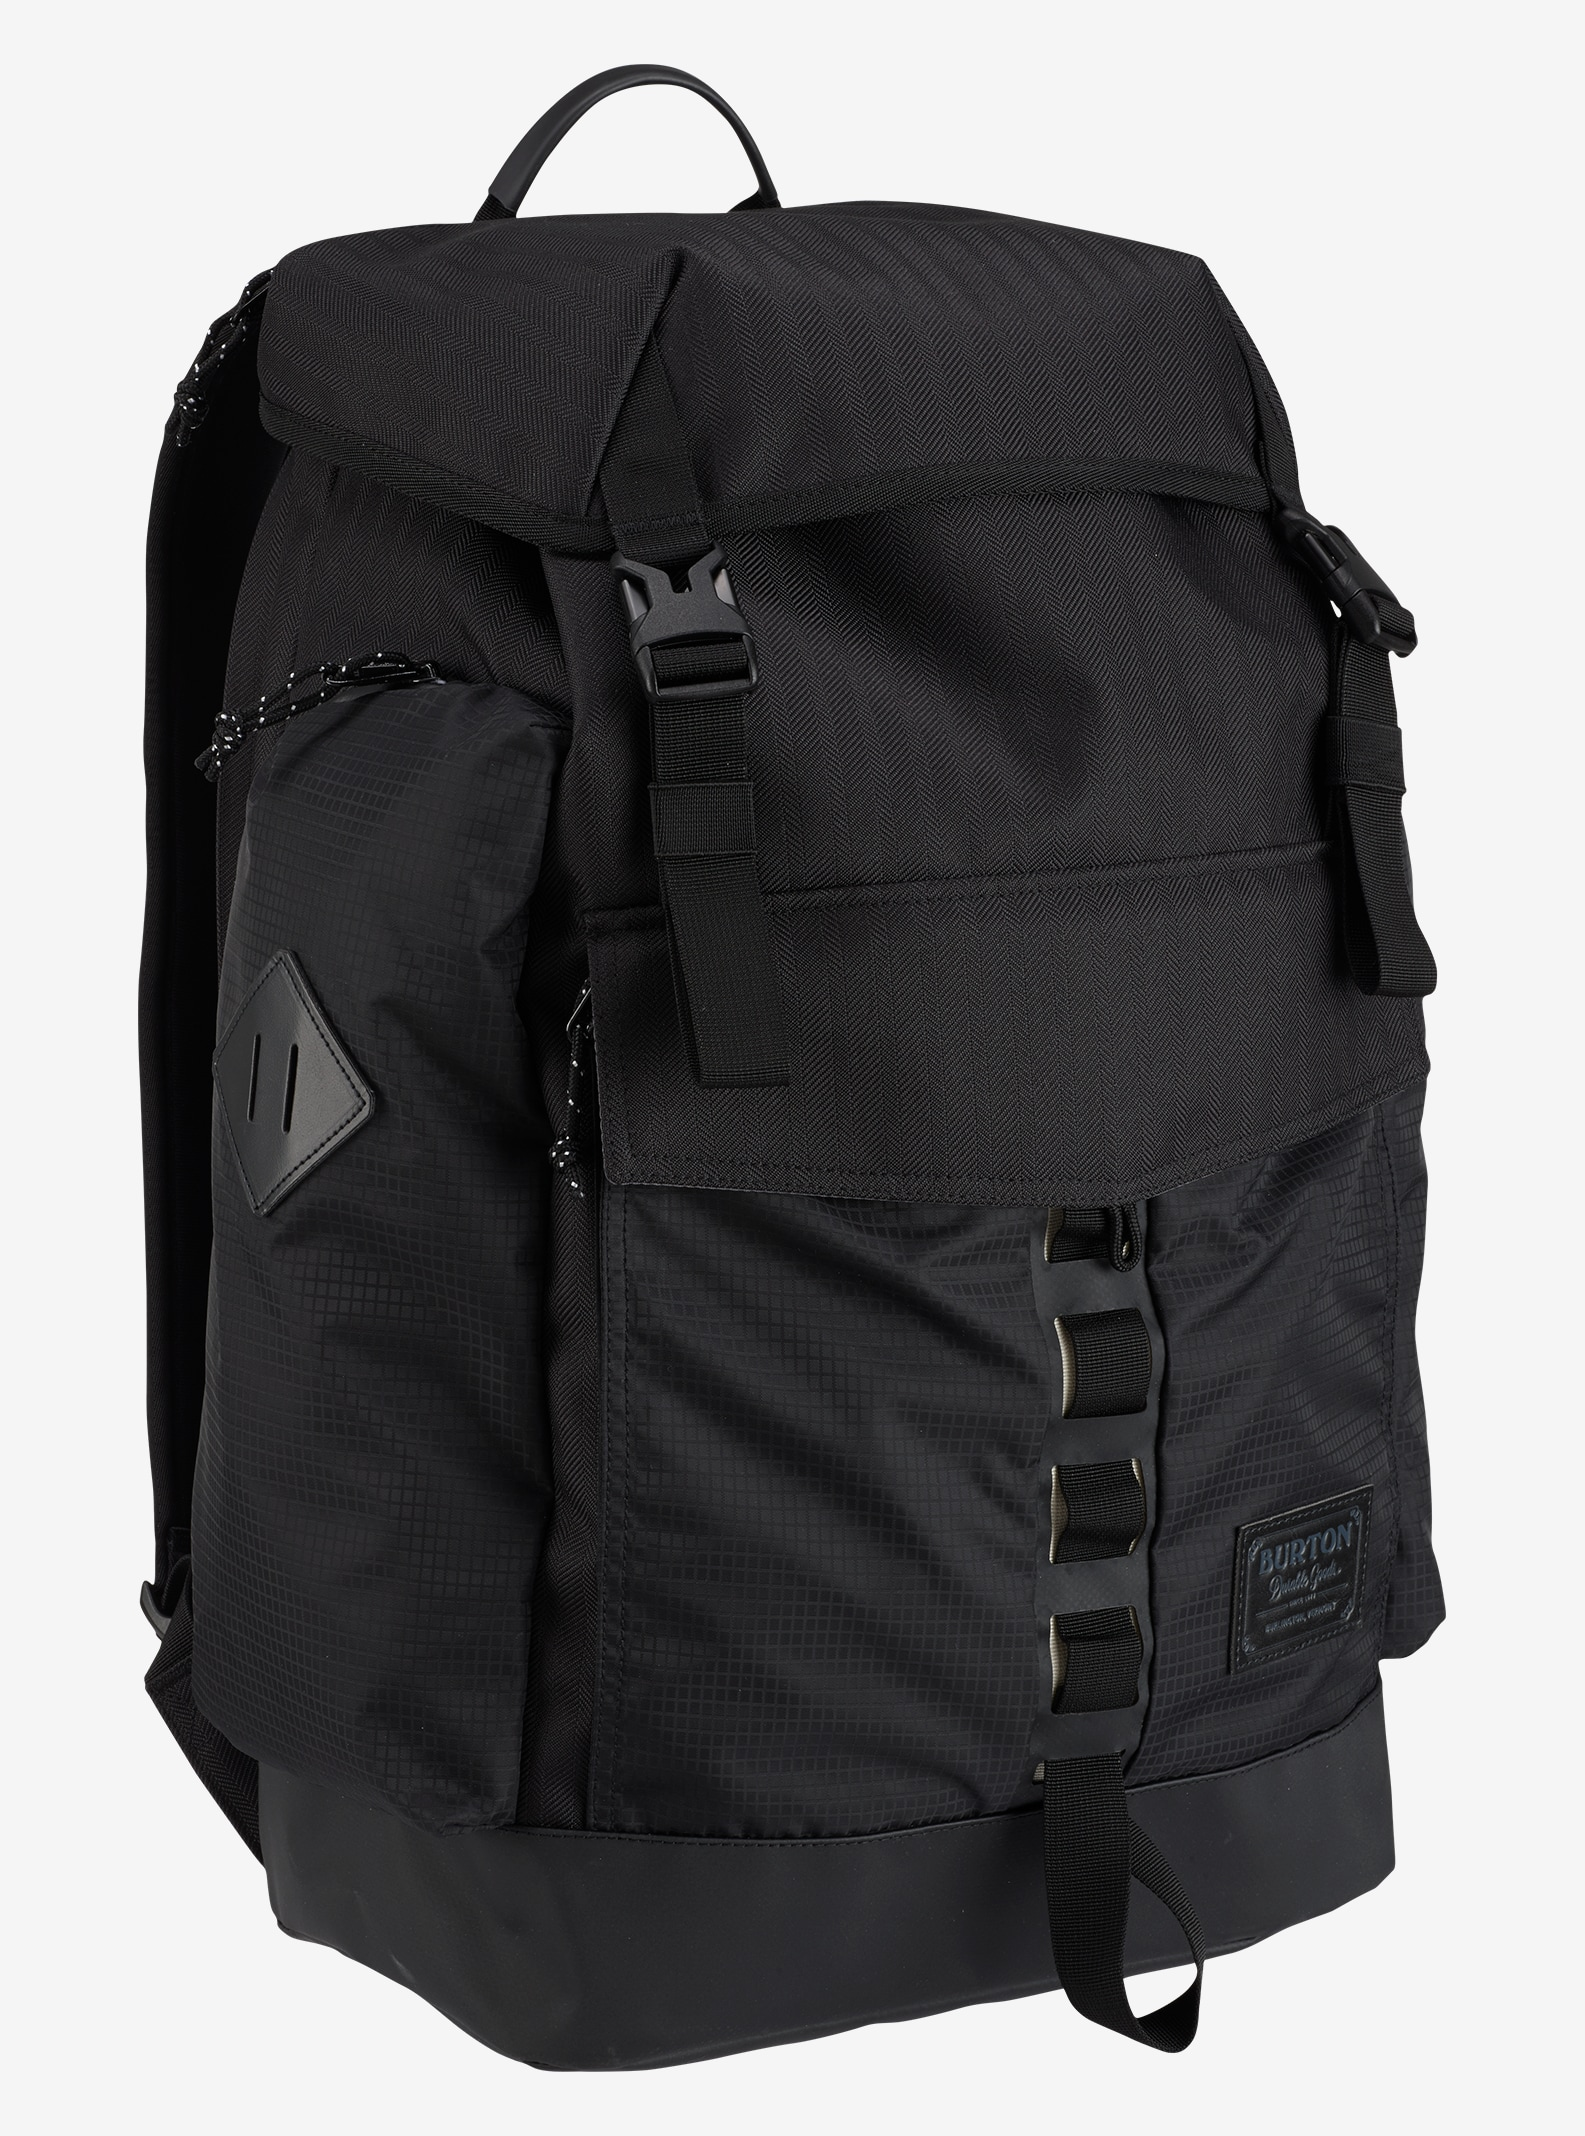 Burton Fathom Backpack shown in True Black Heather Twill